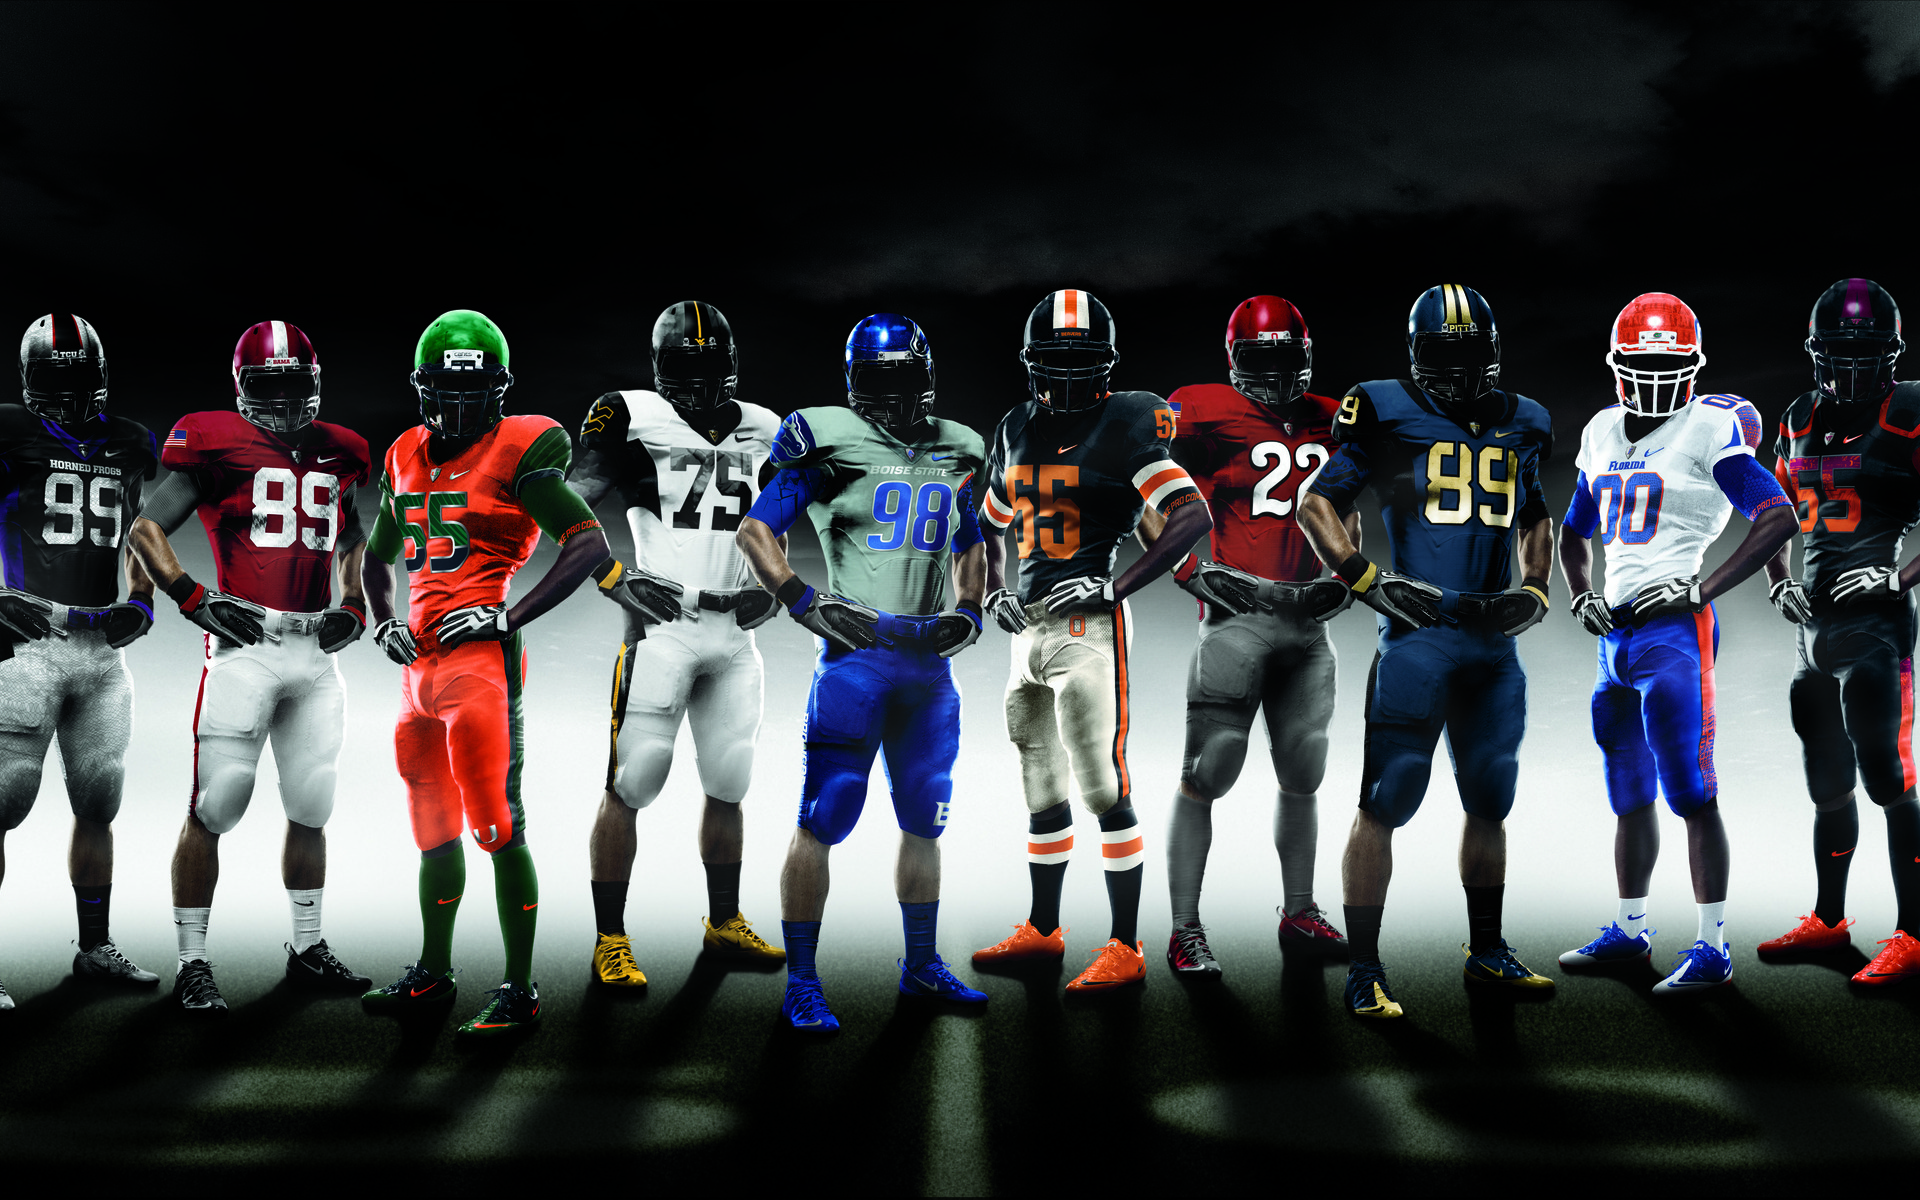 College Sports Wallpapers